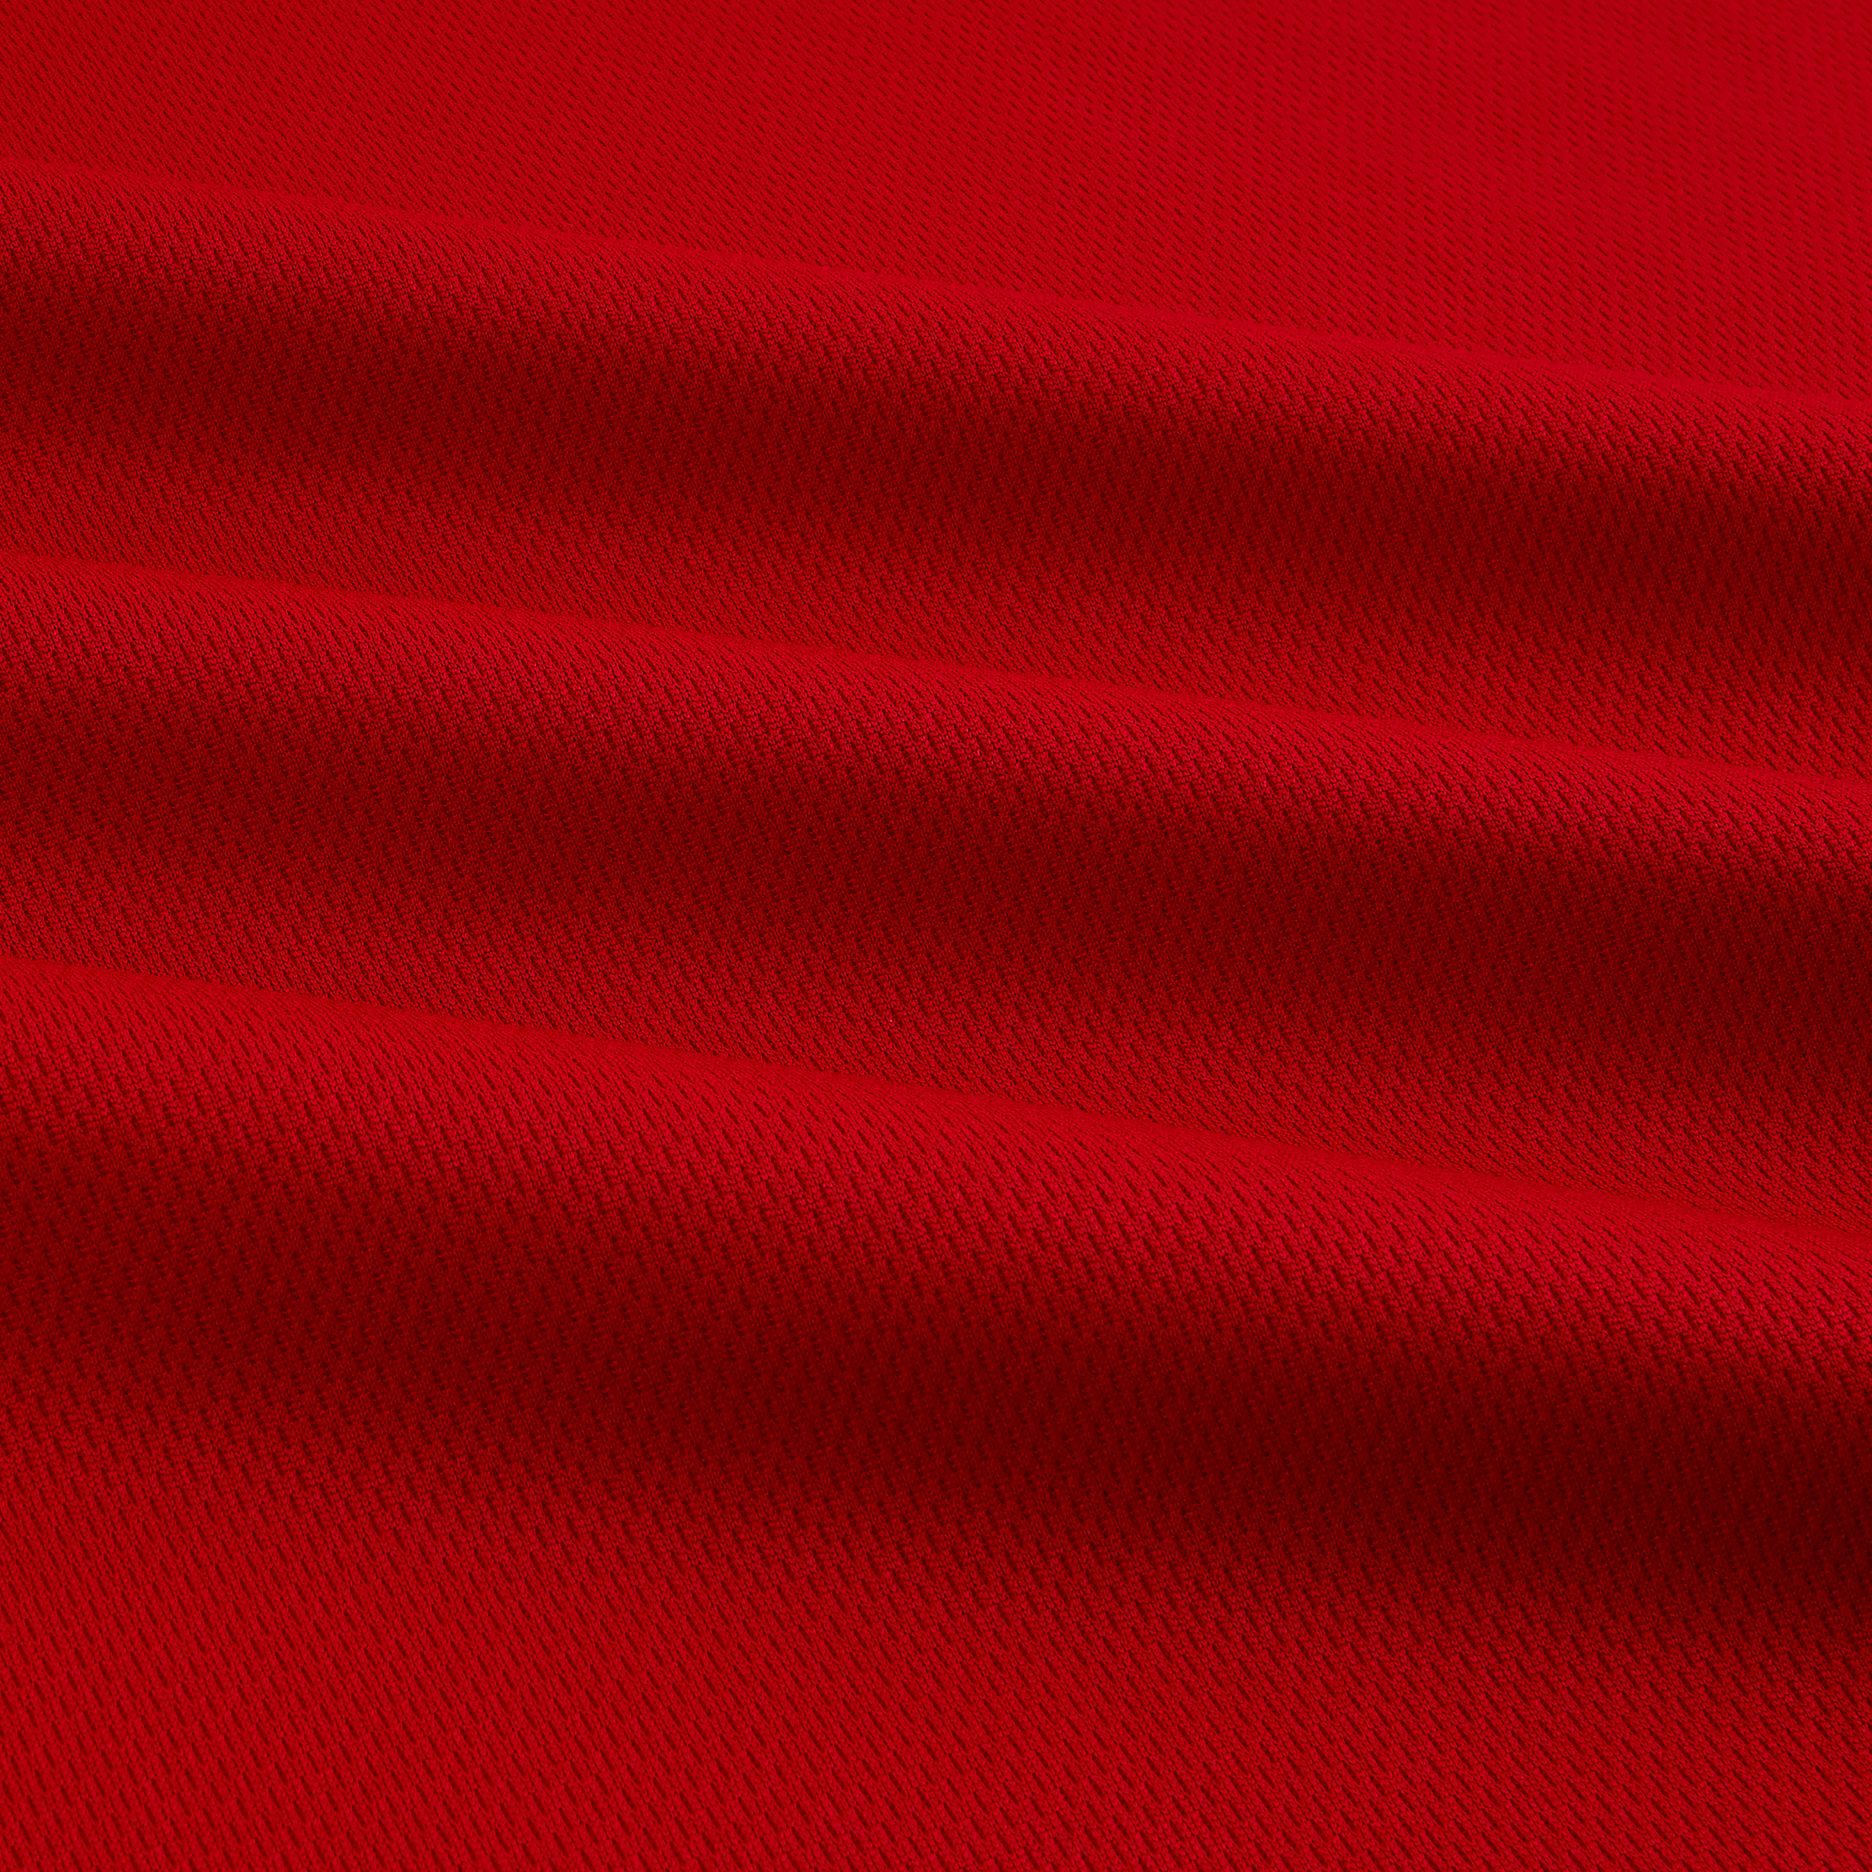 Athletic Mesh Knit Red Fabric by Textile Creations in USA